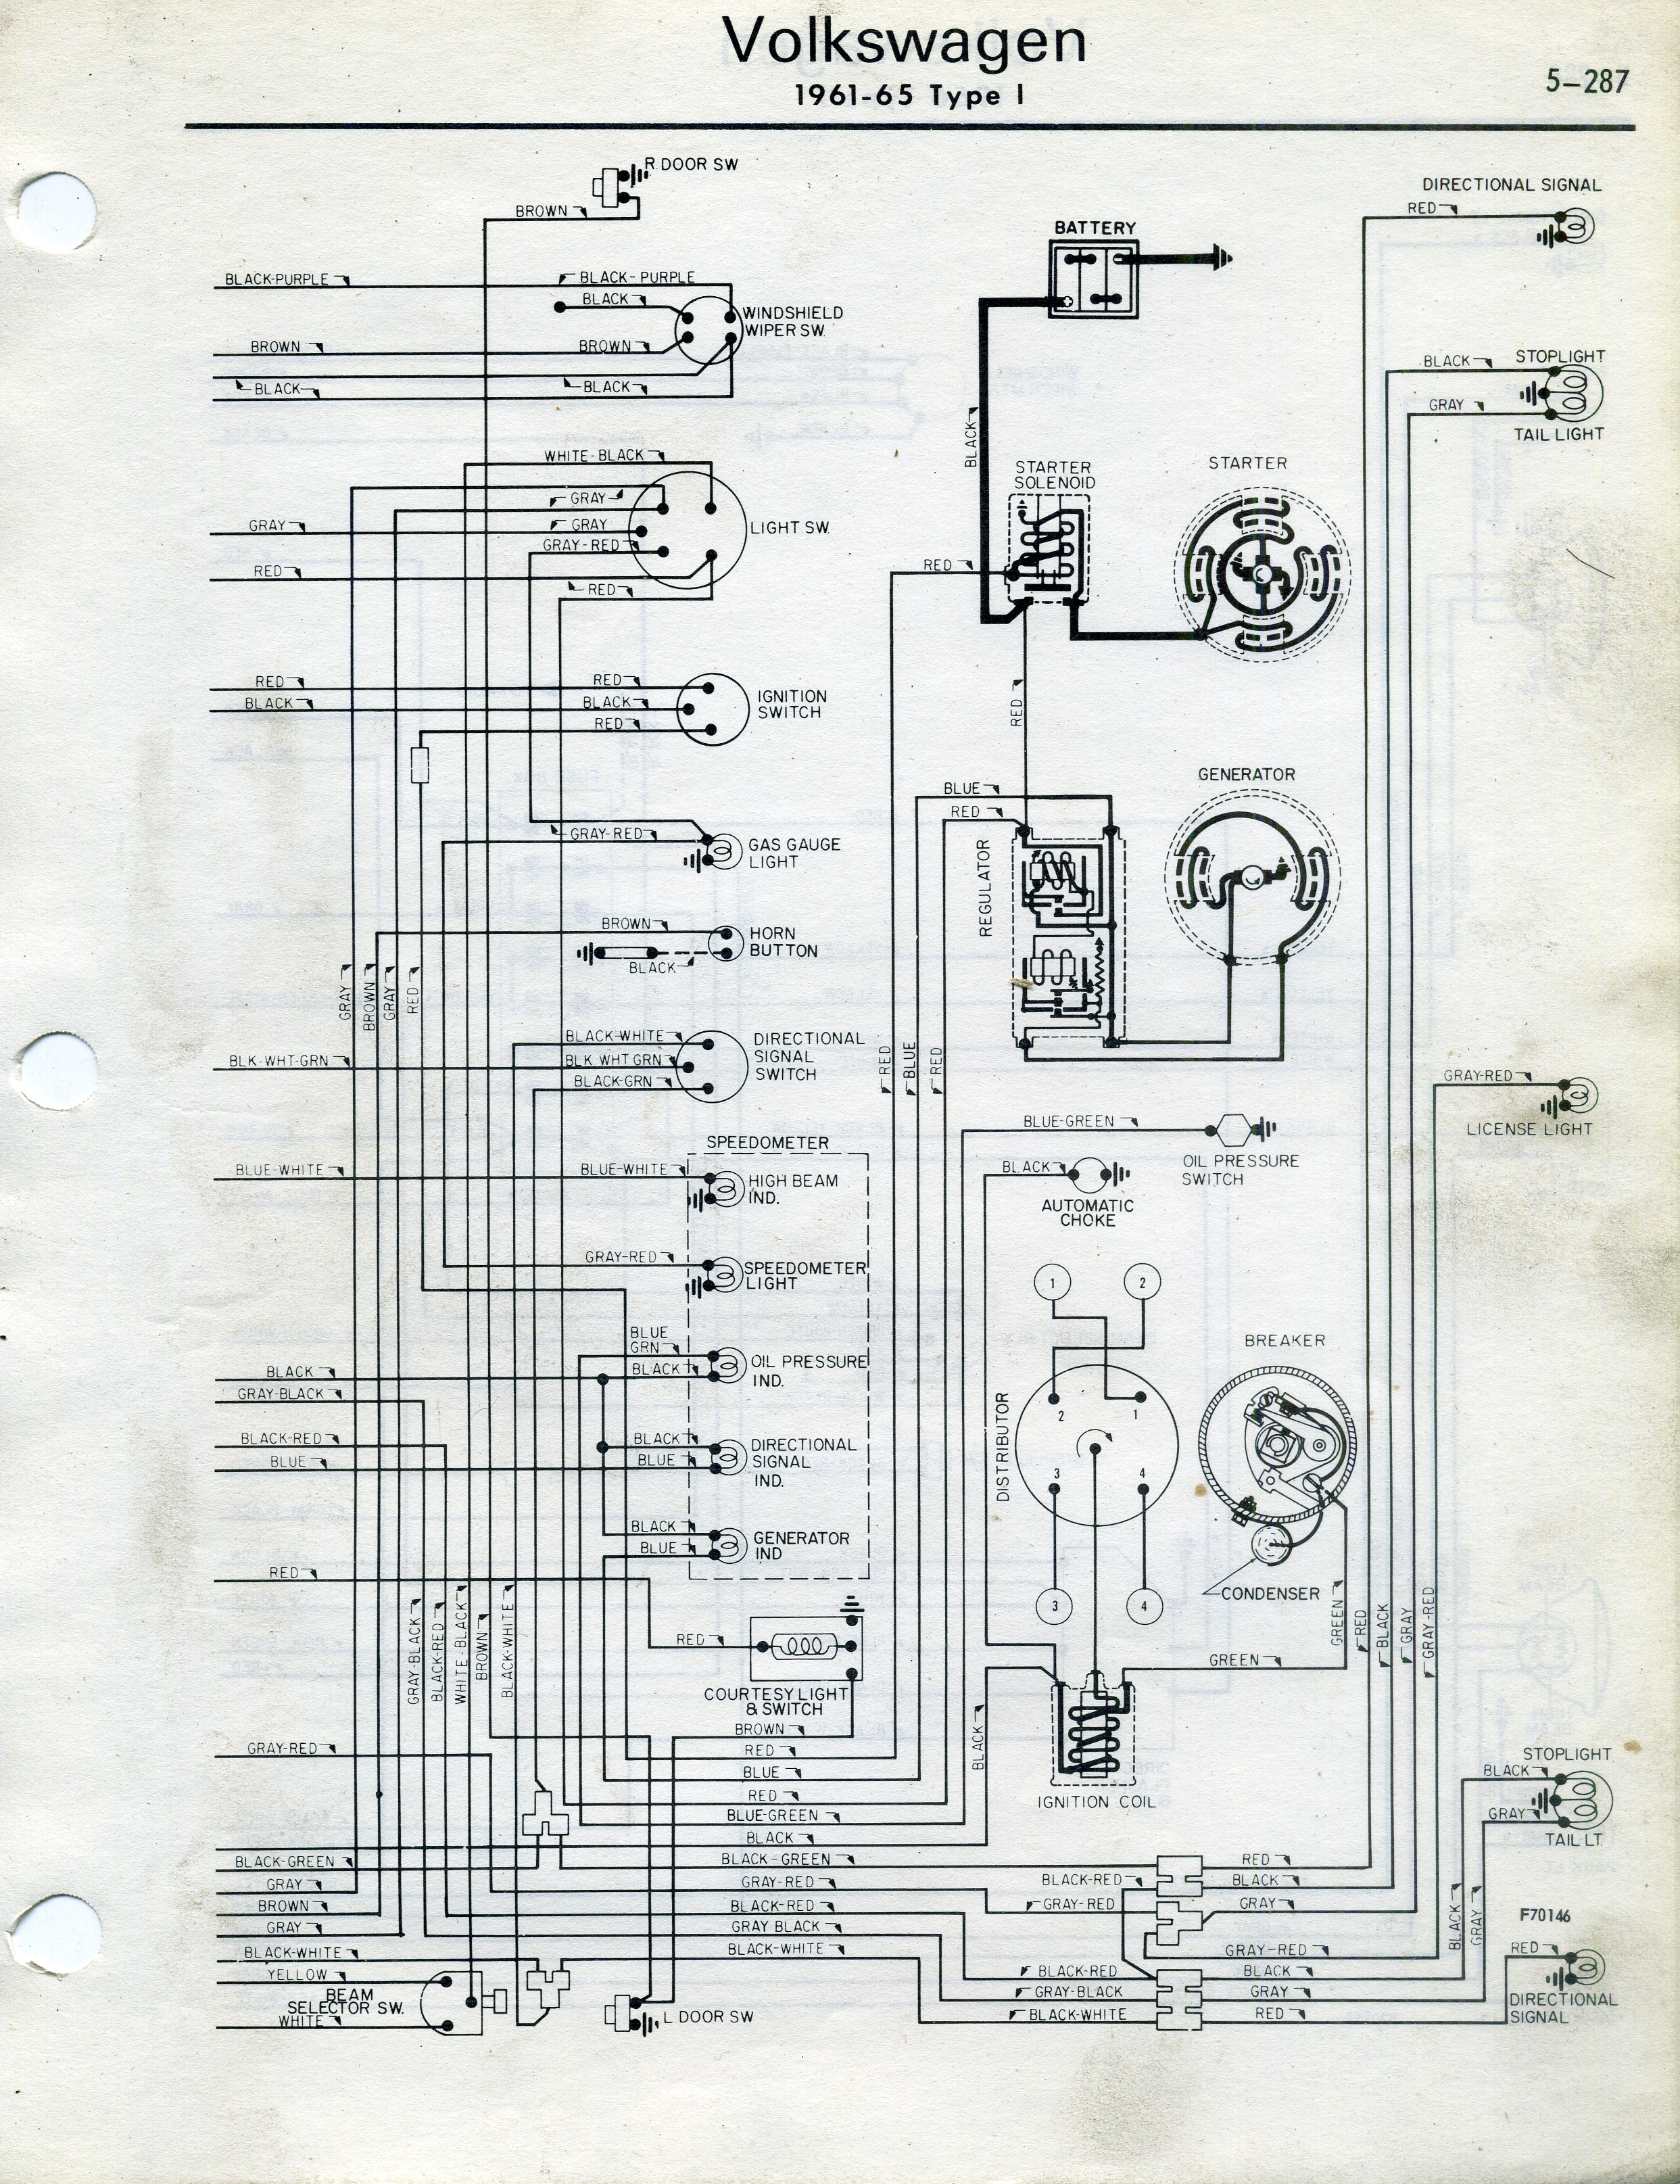 mitchell automotive wiring diagrams 2001 ford f350 fuse box diagram thesamba type 1